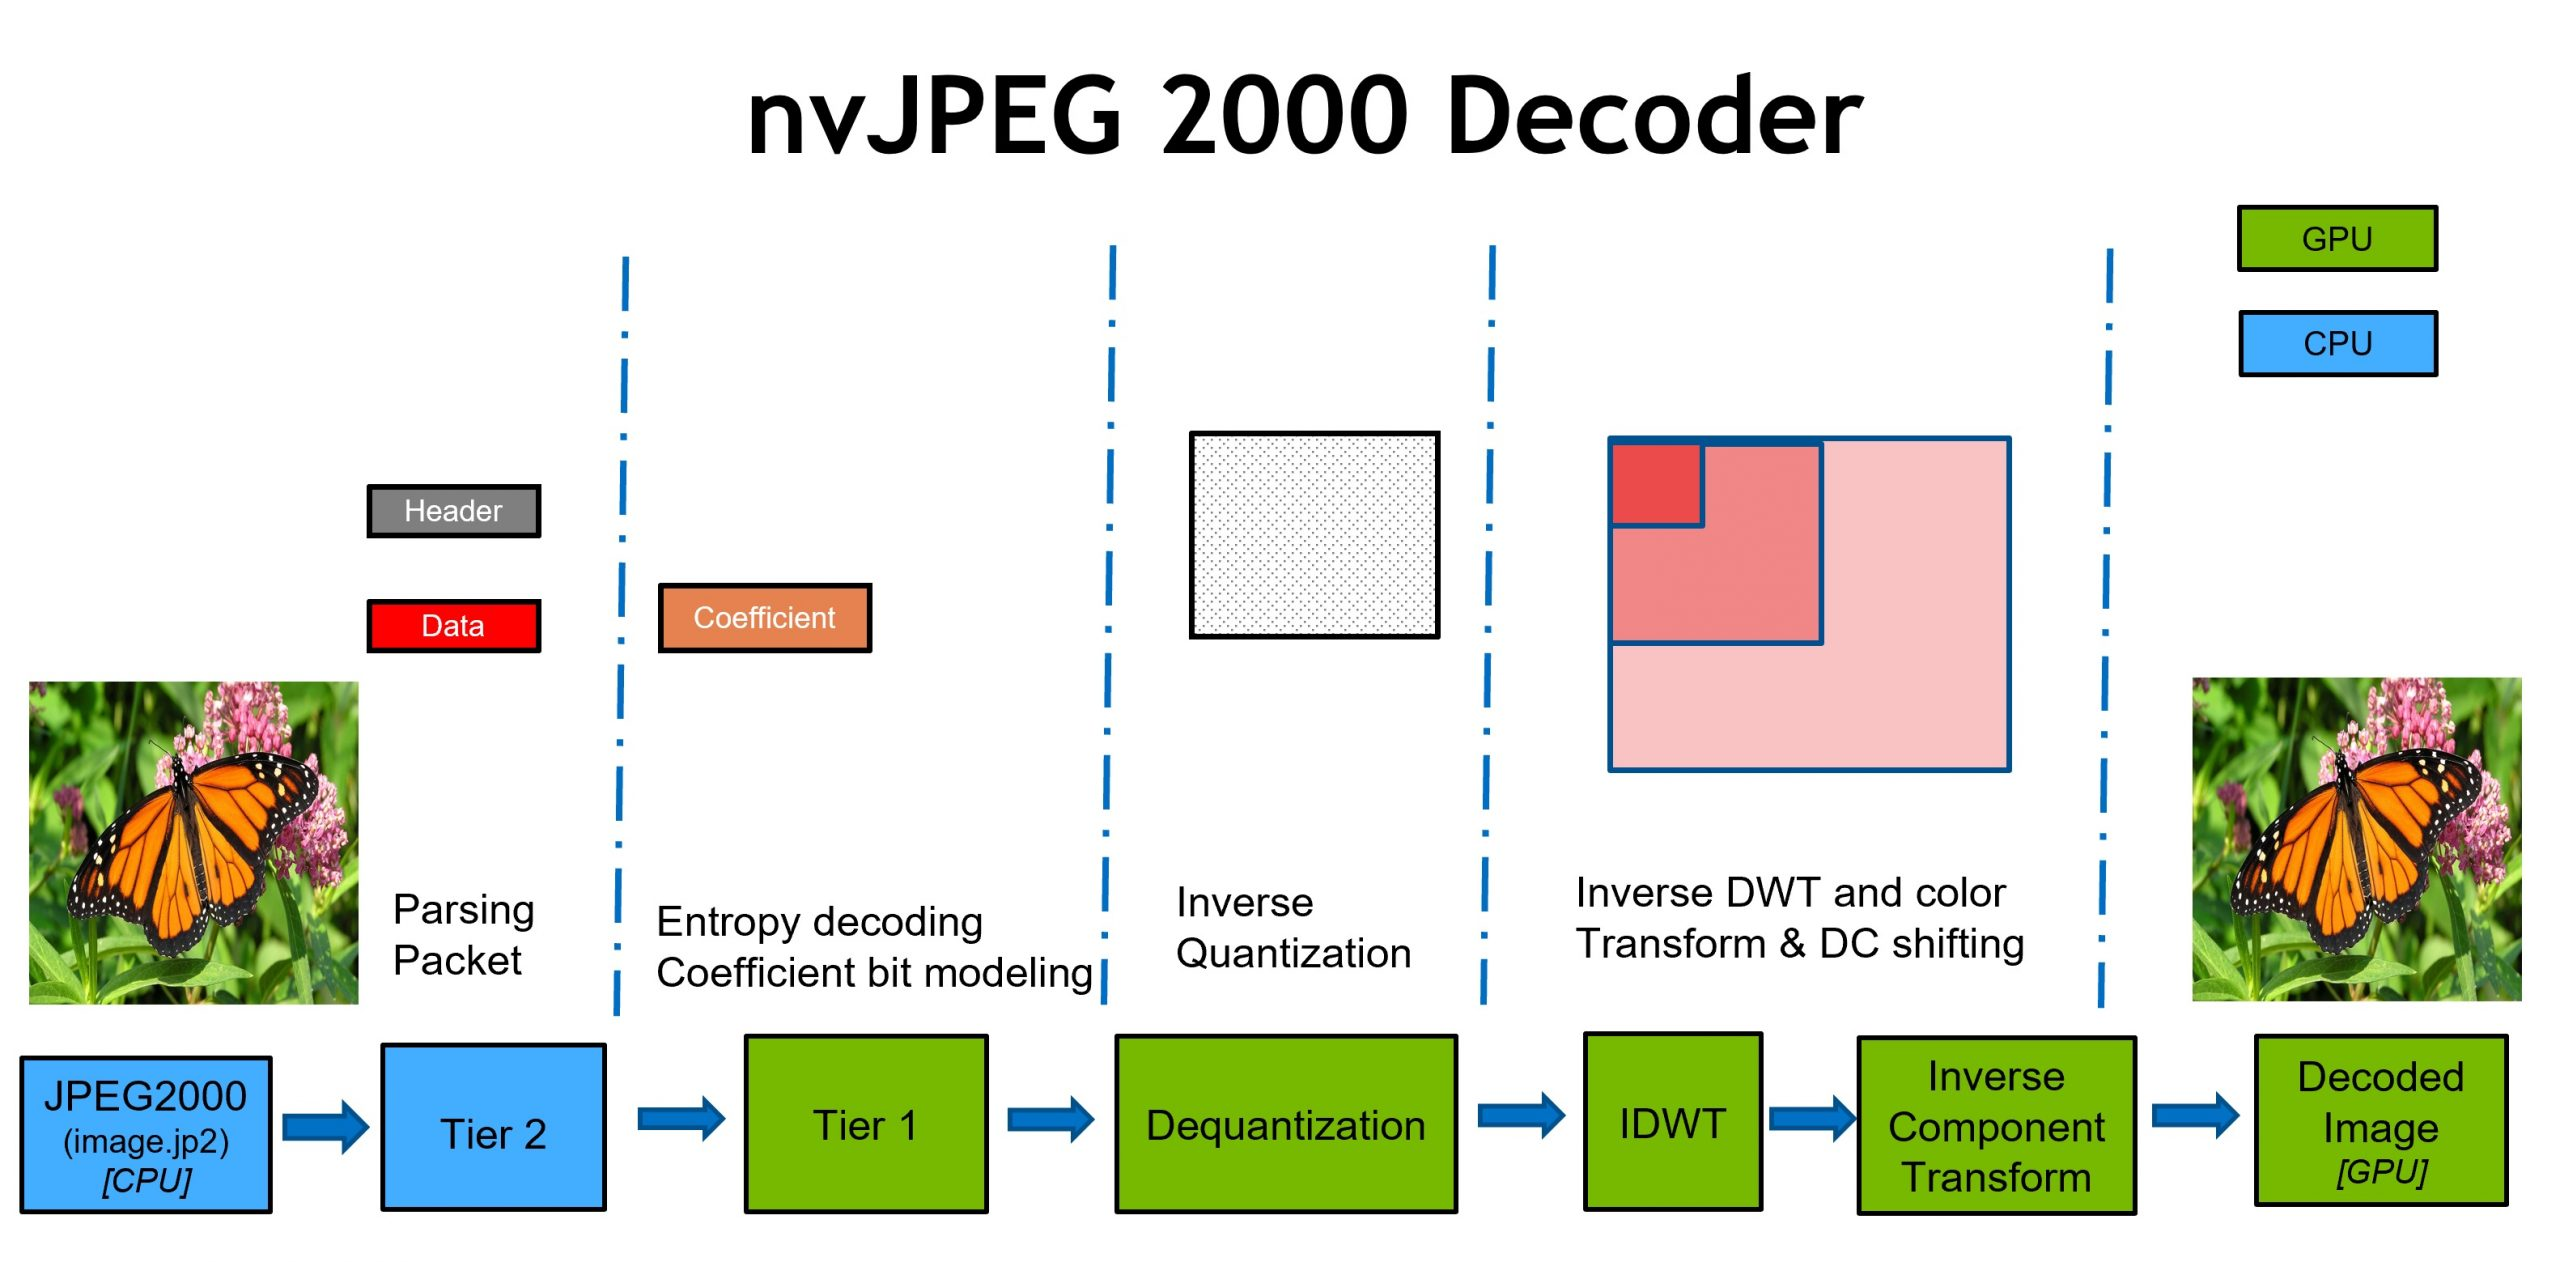 The CPU runs the JPEG2000 and Tier 2 stages. GPU stages include Tier 1, dequantization, IDWT, inverse component transform, and the decoded image.